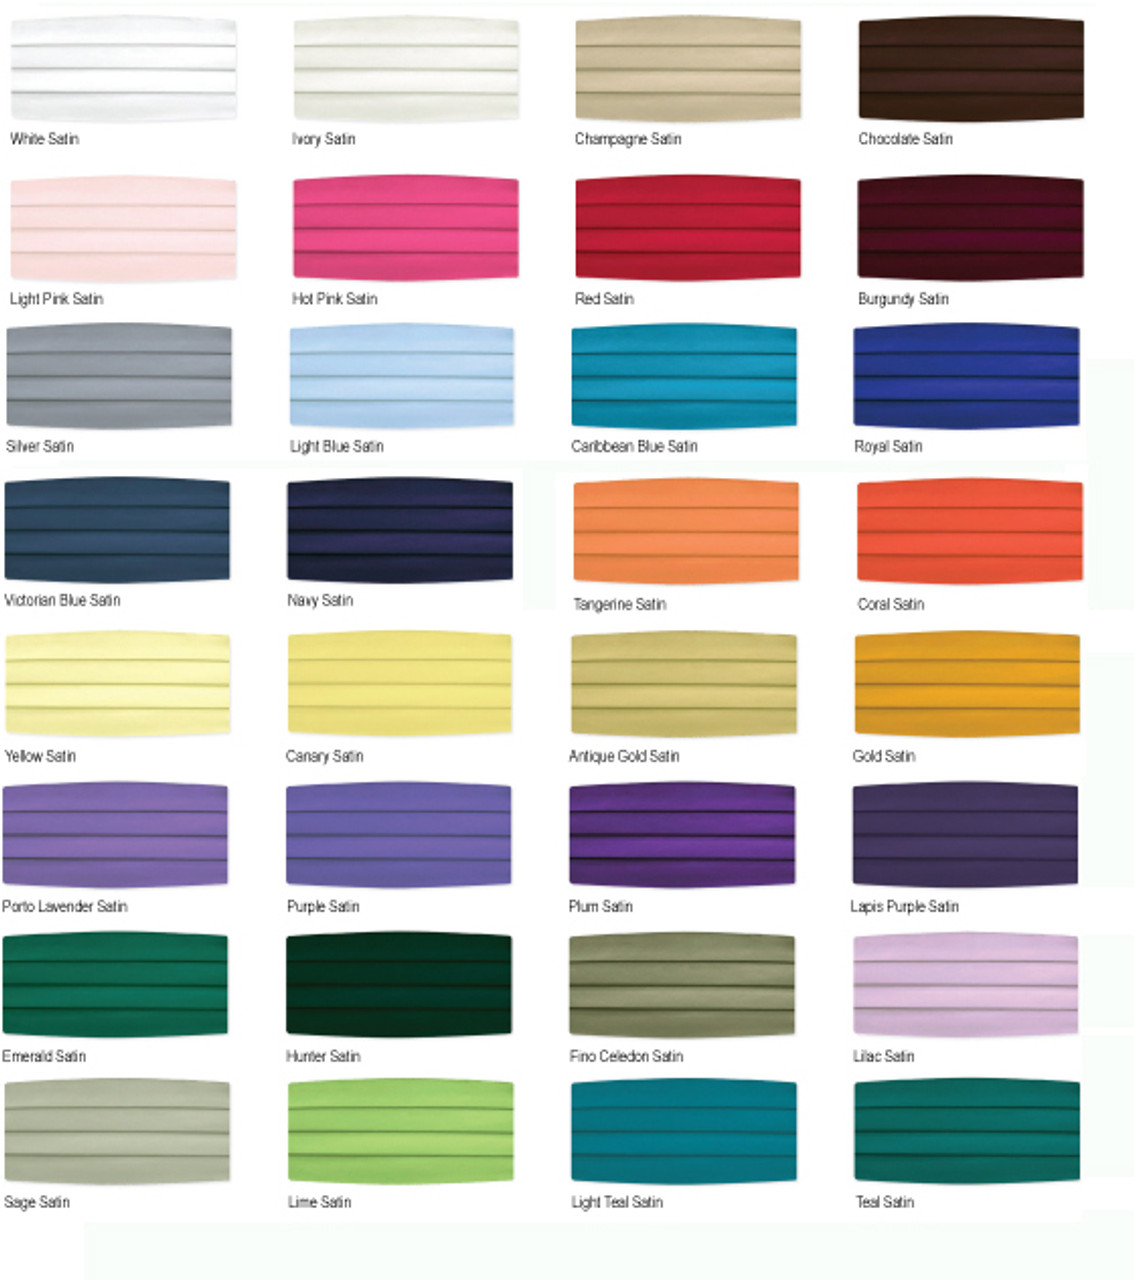 Cummerbunds in every color to choose for your restaurants' uniforms